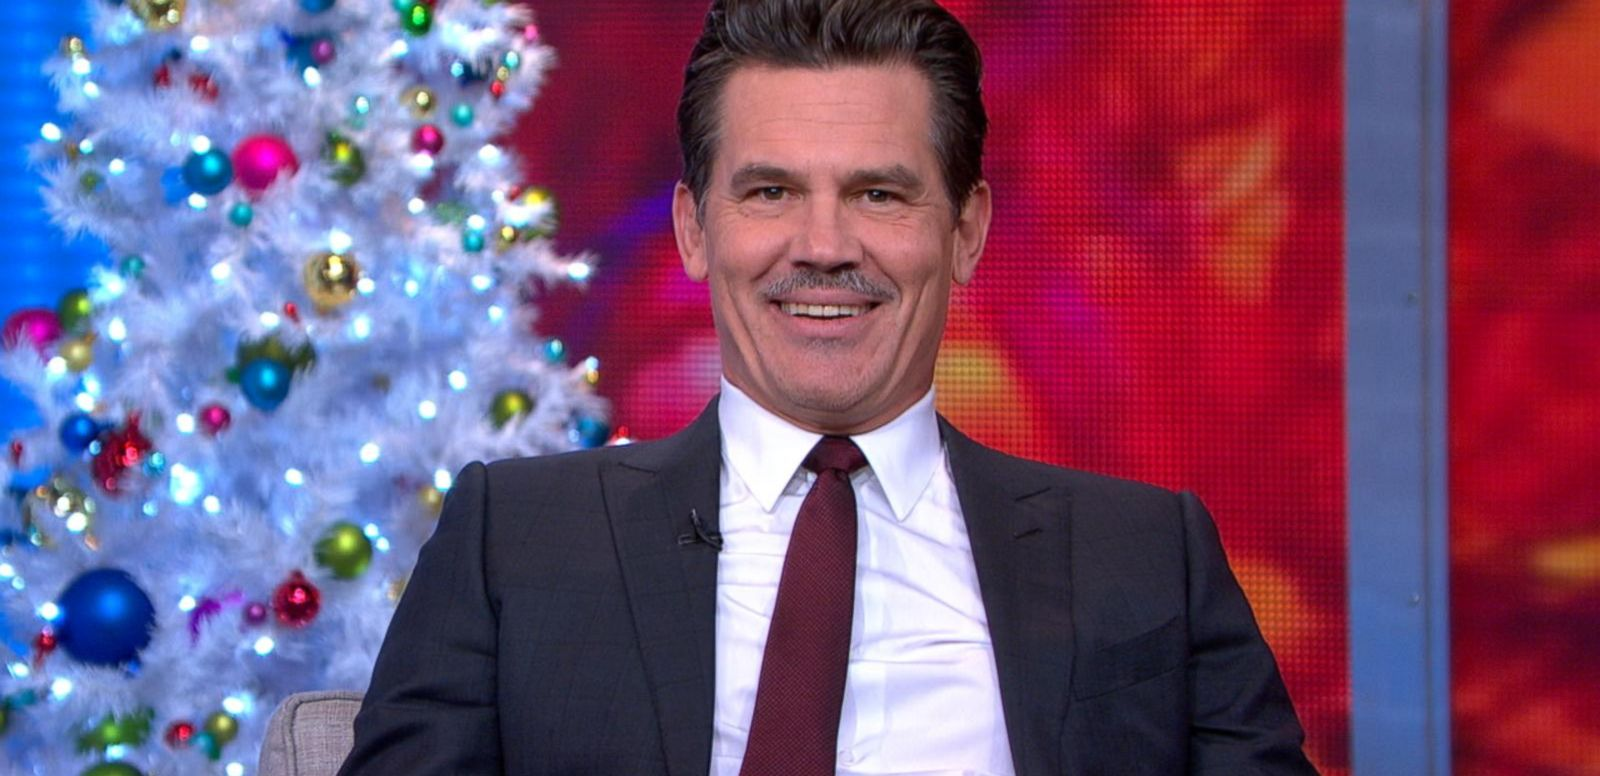 VIDEO: Josh Brolin on Working With Joaquin Phoenix in 'Inherent Vice'